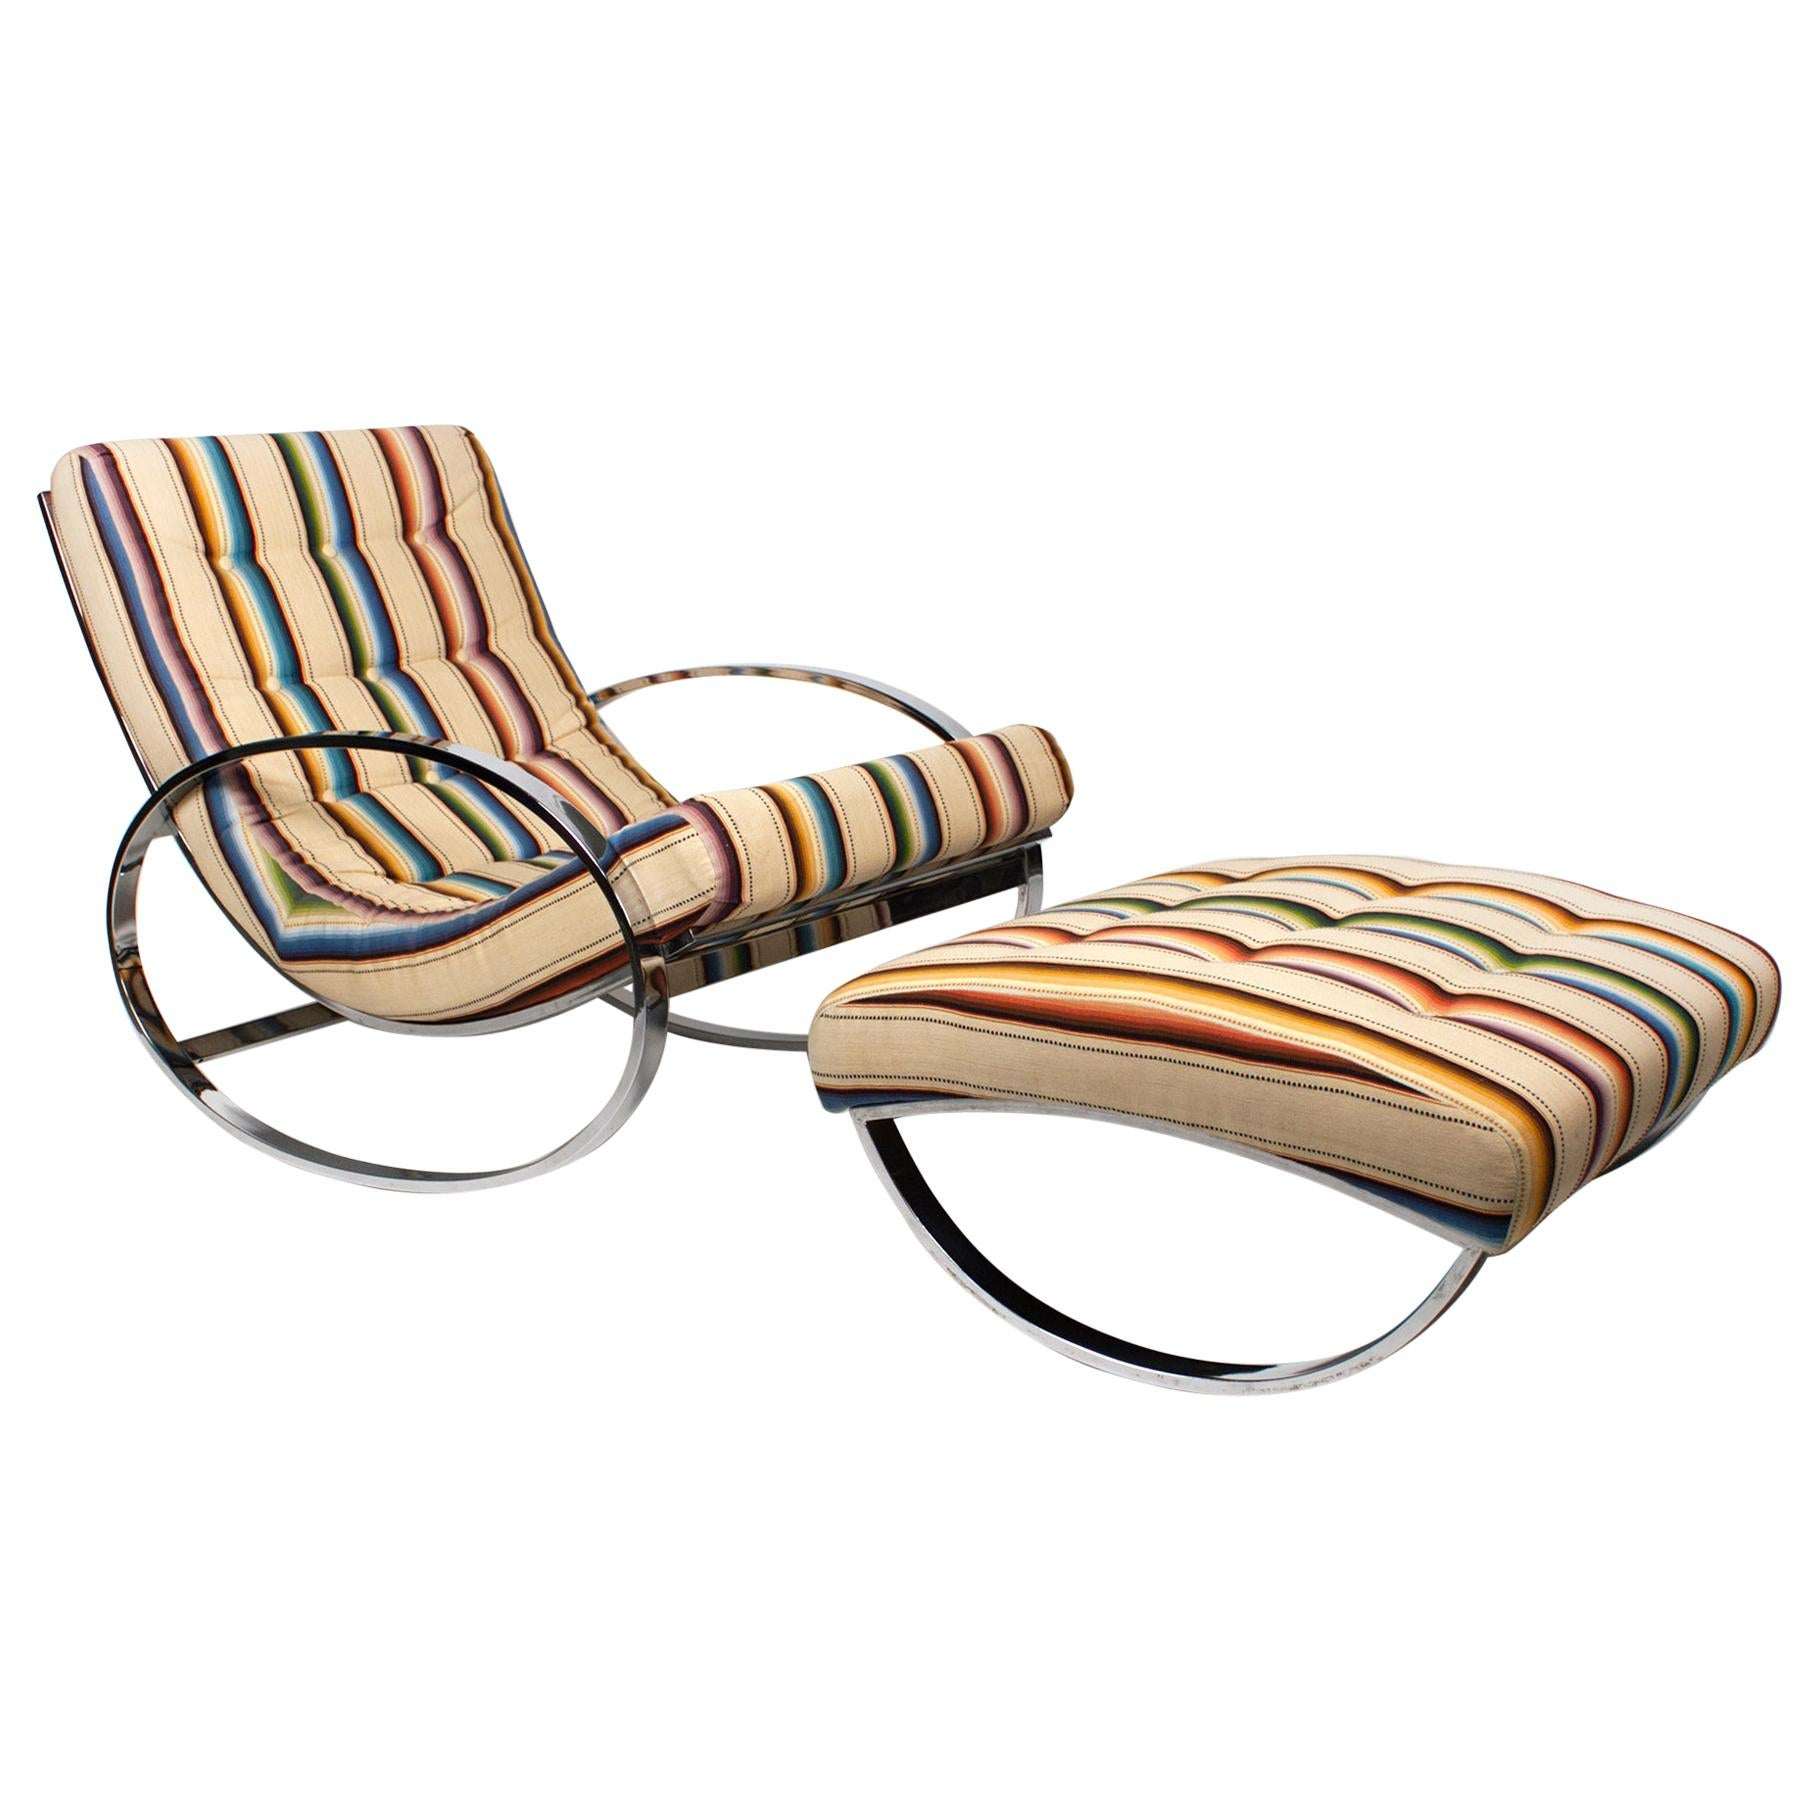 Rocking Lounge Chair and Ottoman by Renato Zevi